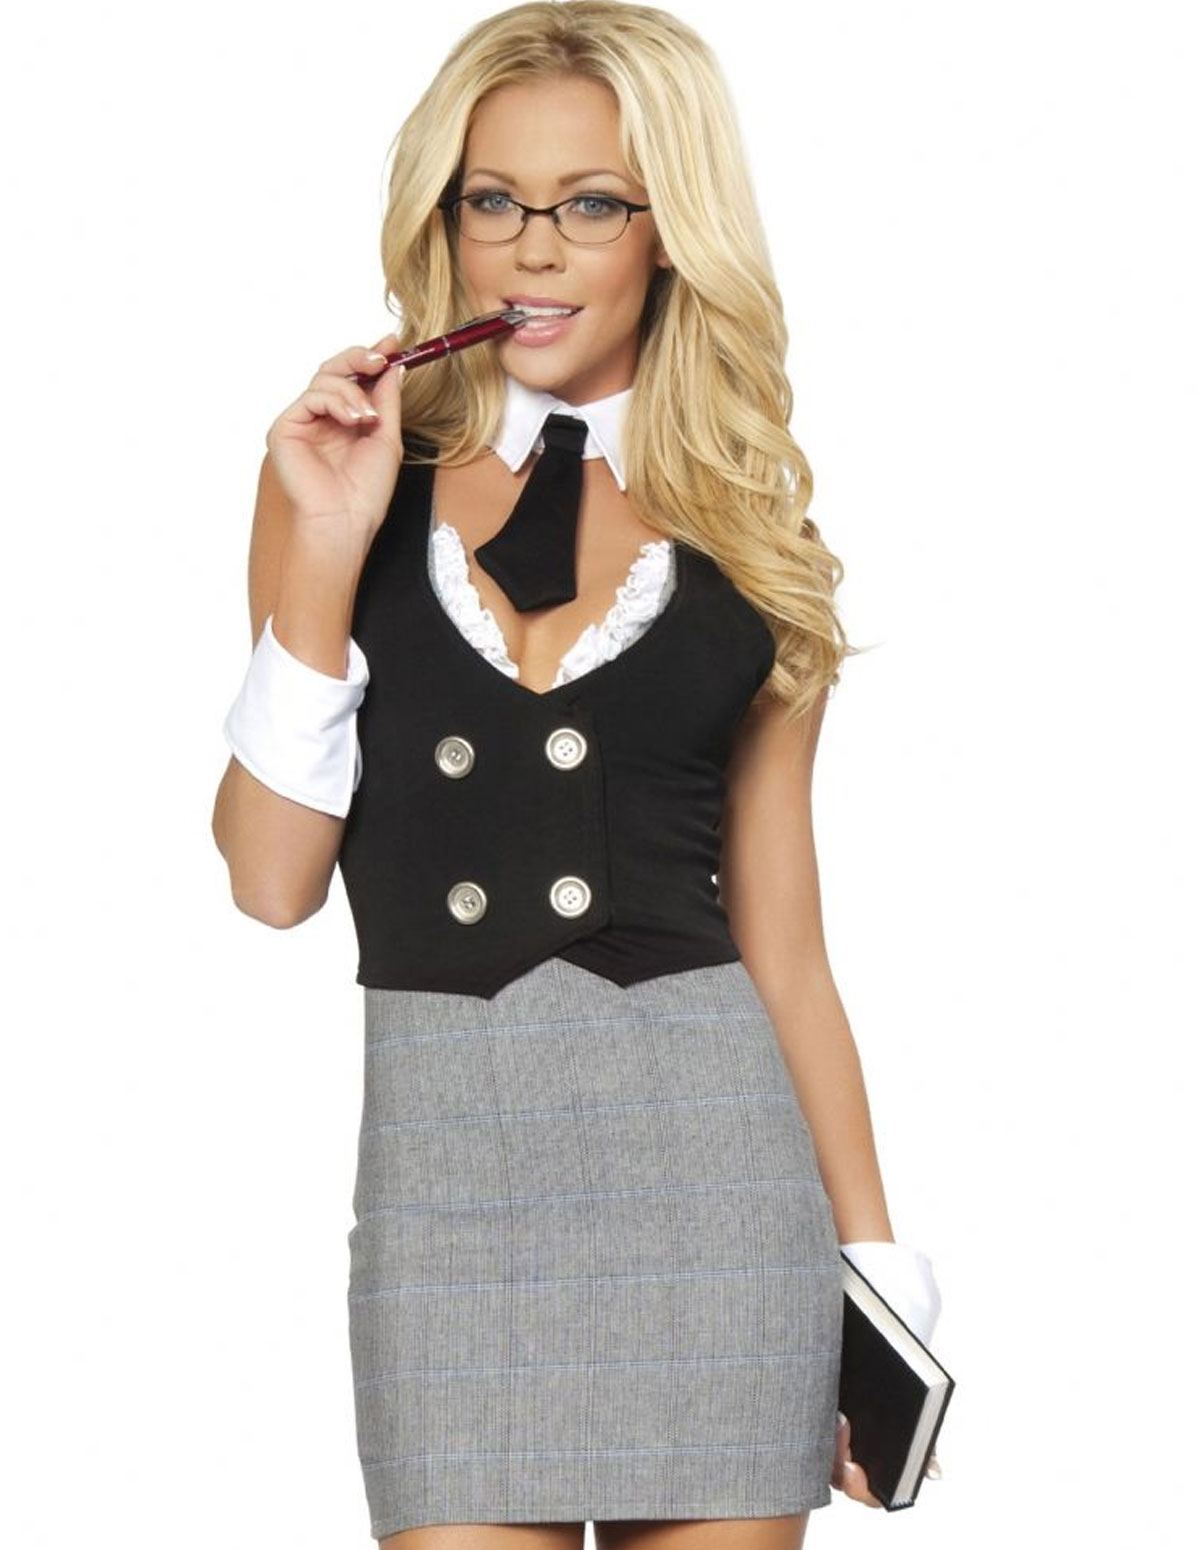 4Pc Librarian Costume